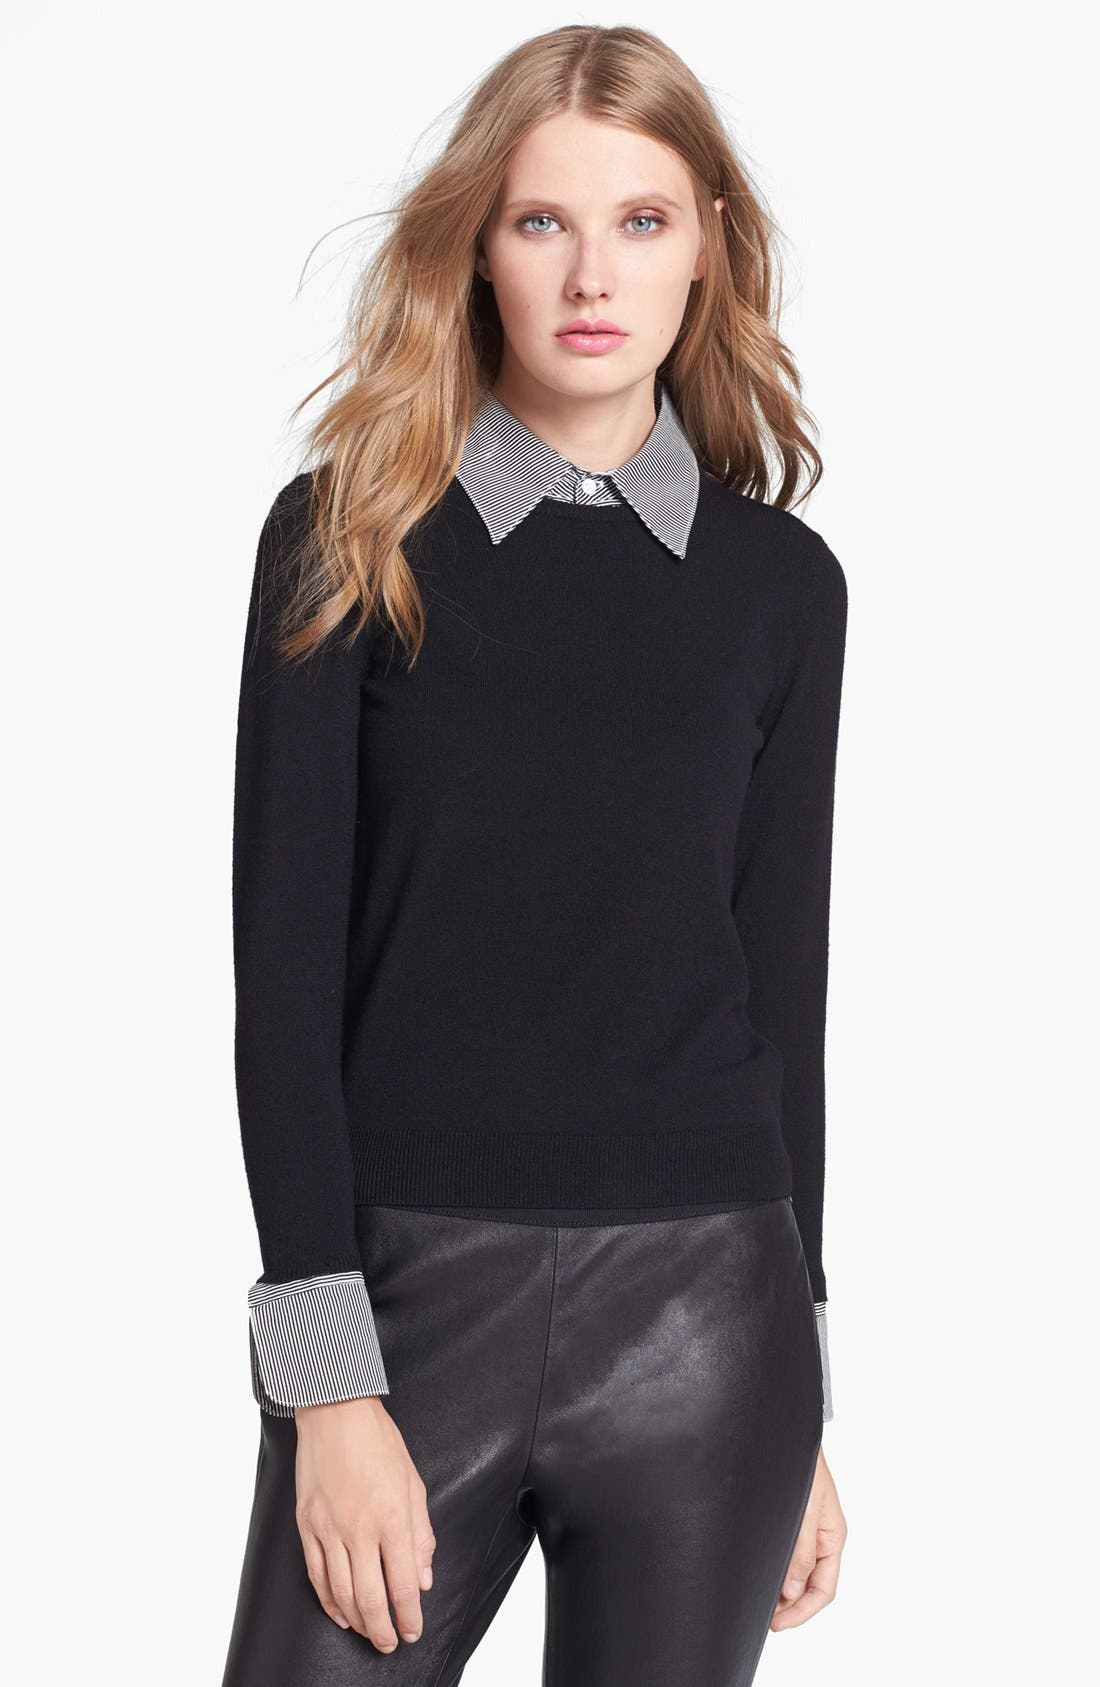 Alternate Image 1 Selected - Alice + Olivia 'Wiley' Contrast Trim Sweater